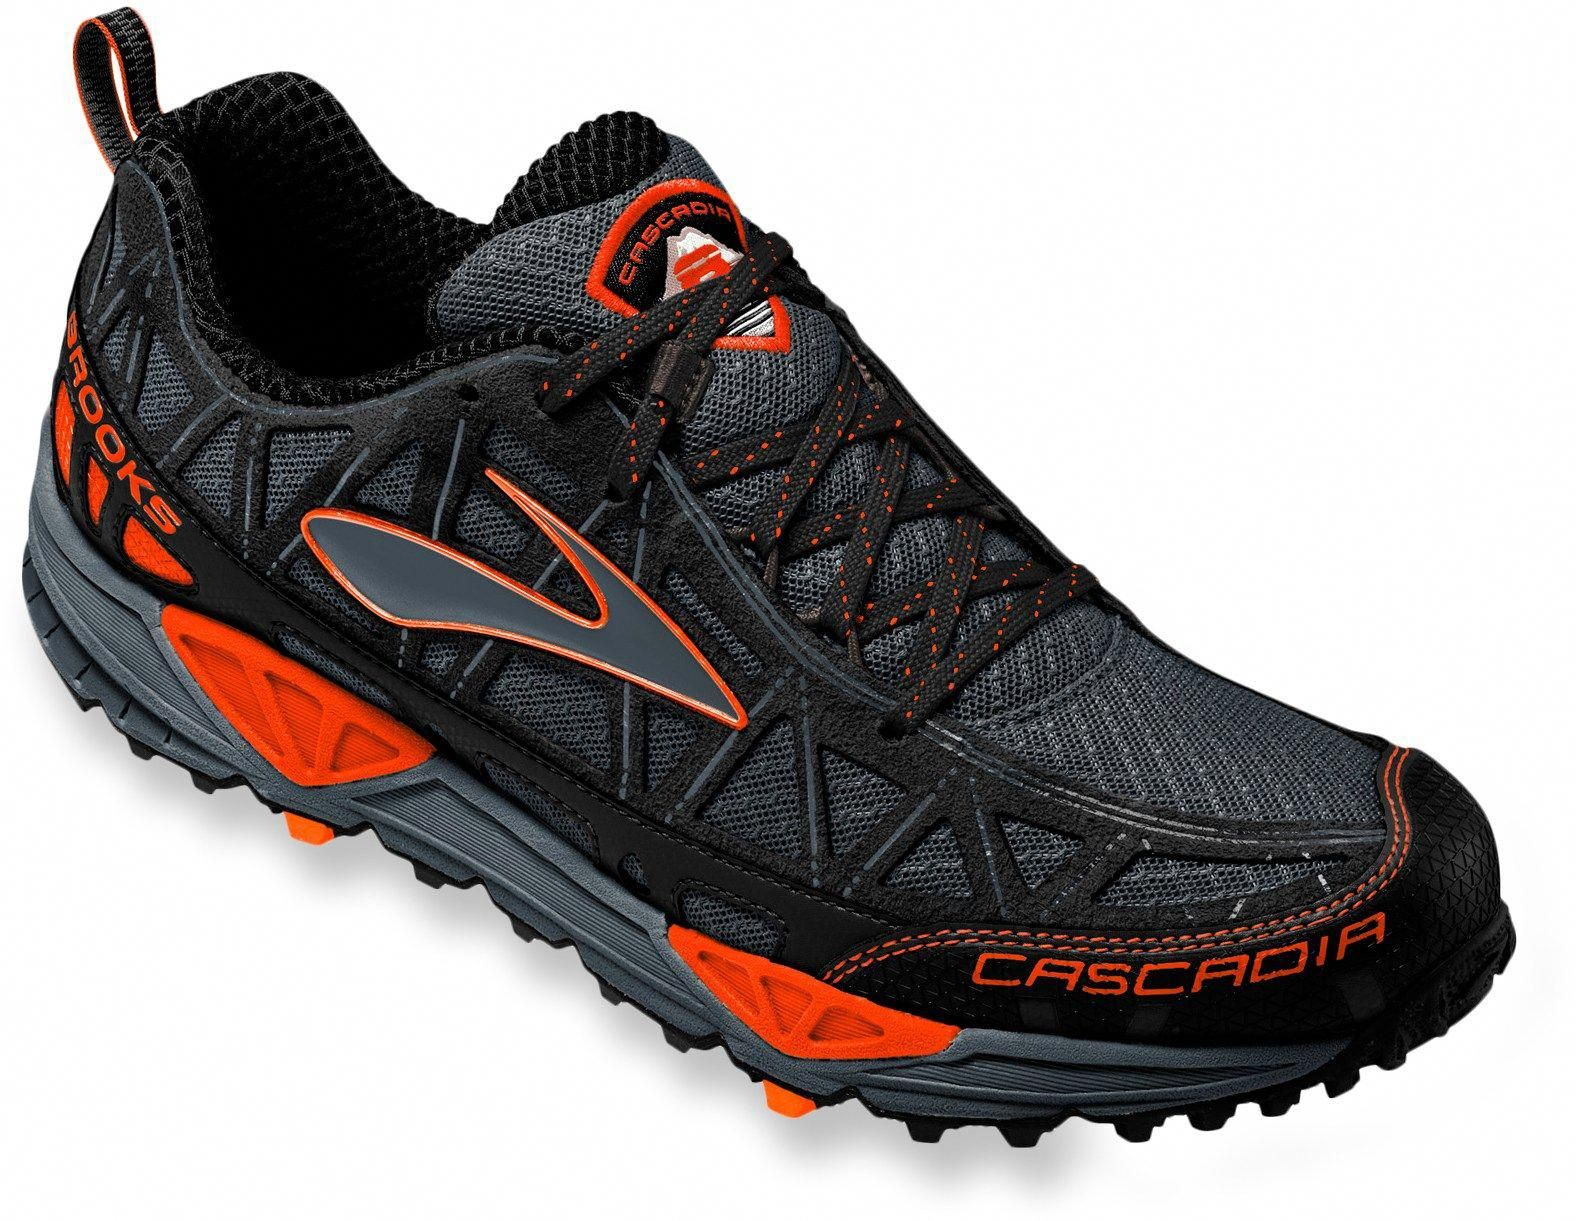 The Traction And Responsive Supportive To Tackle Ultras Or Quick Outings Through Local Mens Trail Running Shoes Best Trail Running Shoes Running Shoes For Men